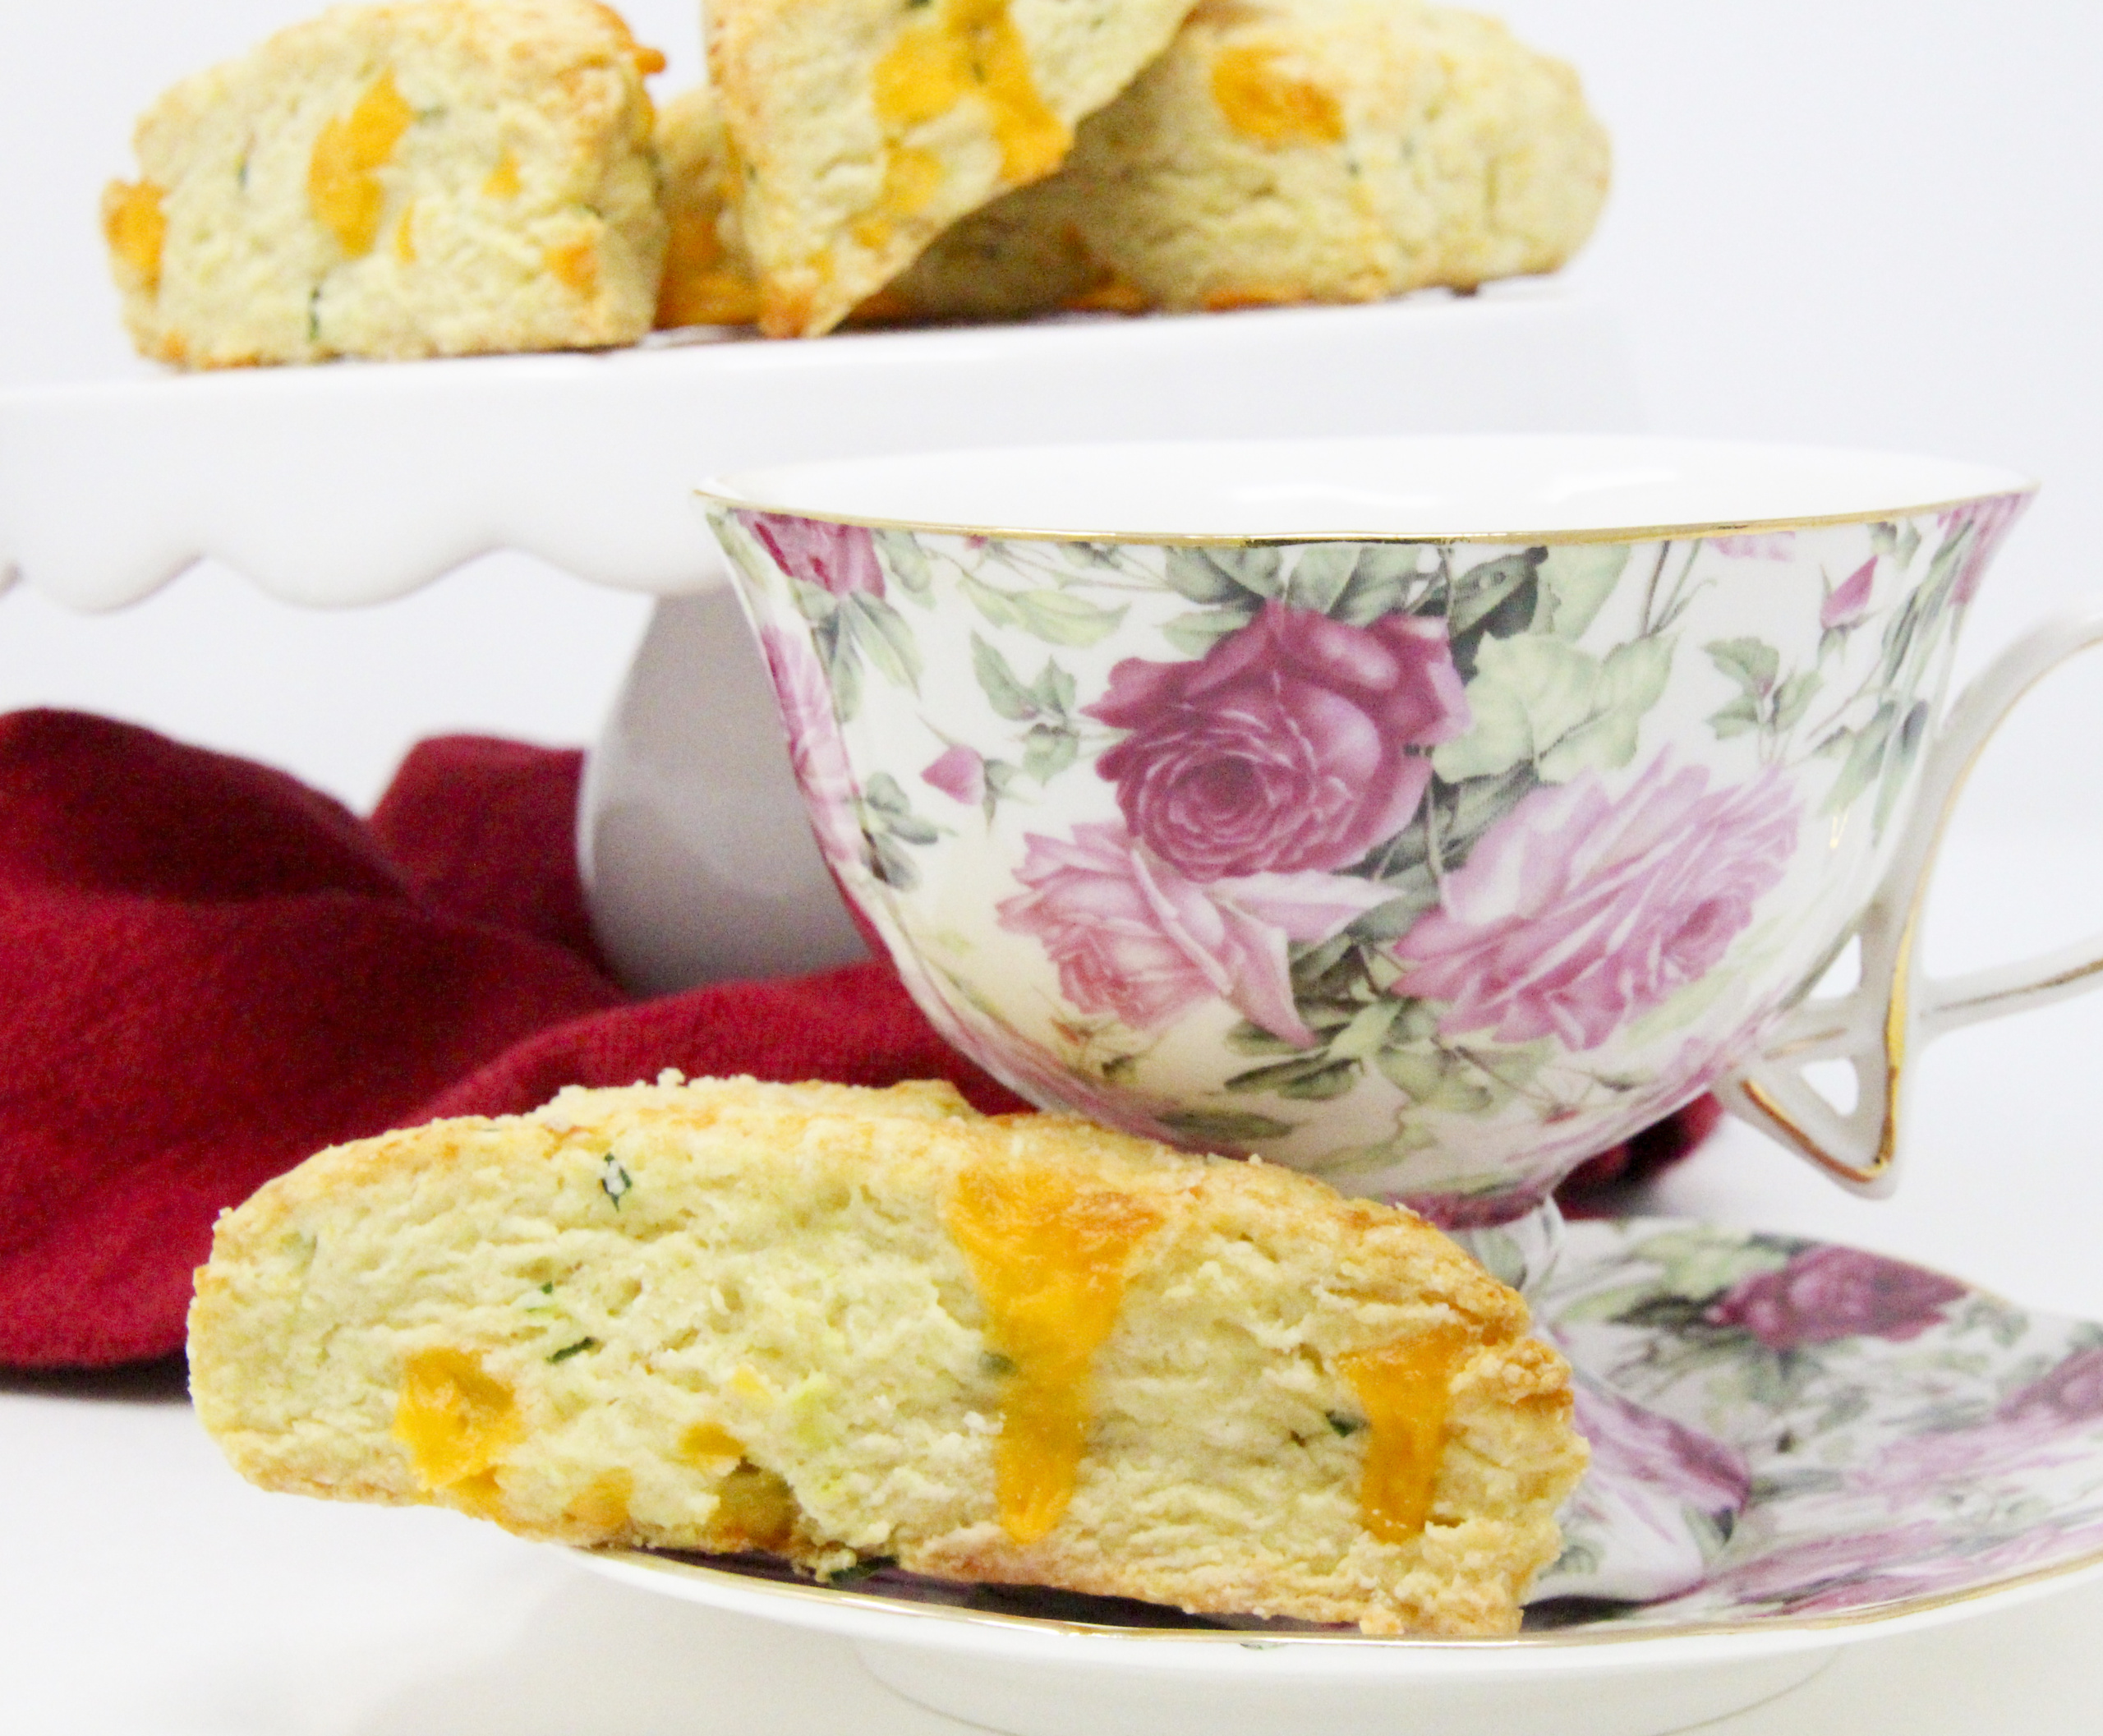 A delectable combination of flaky pastry, two kinds of cheese, and chives, Savory Cheese Scones are the perfect accompaniment to serve with a warming bowl of soup or even used as sandwich bread for lunch or a light supper. Recipe shared with permission granted by Kate Carlisle, author of LITTLE BLACK BOOK.